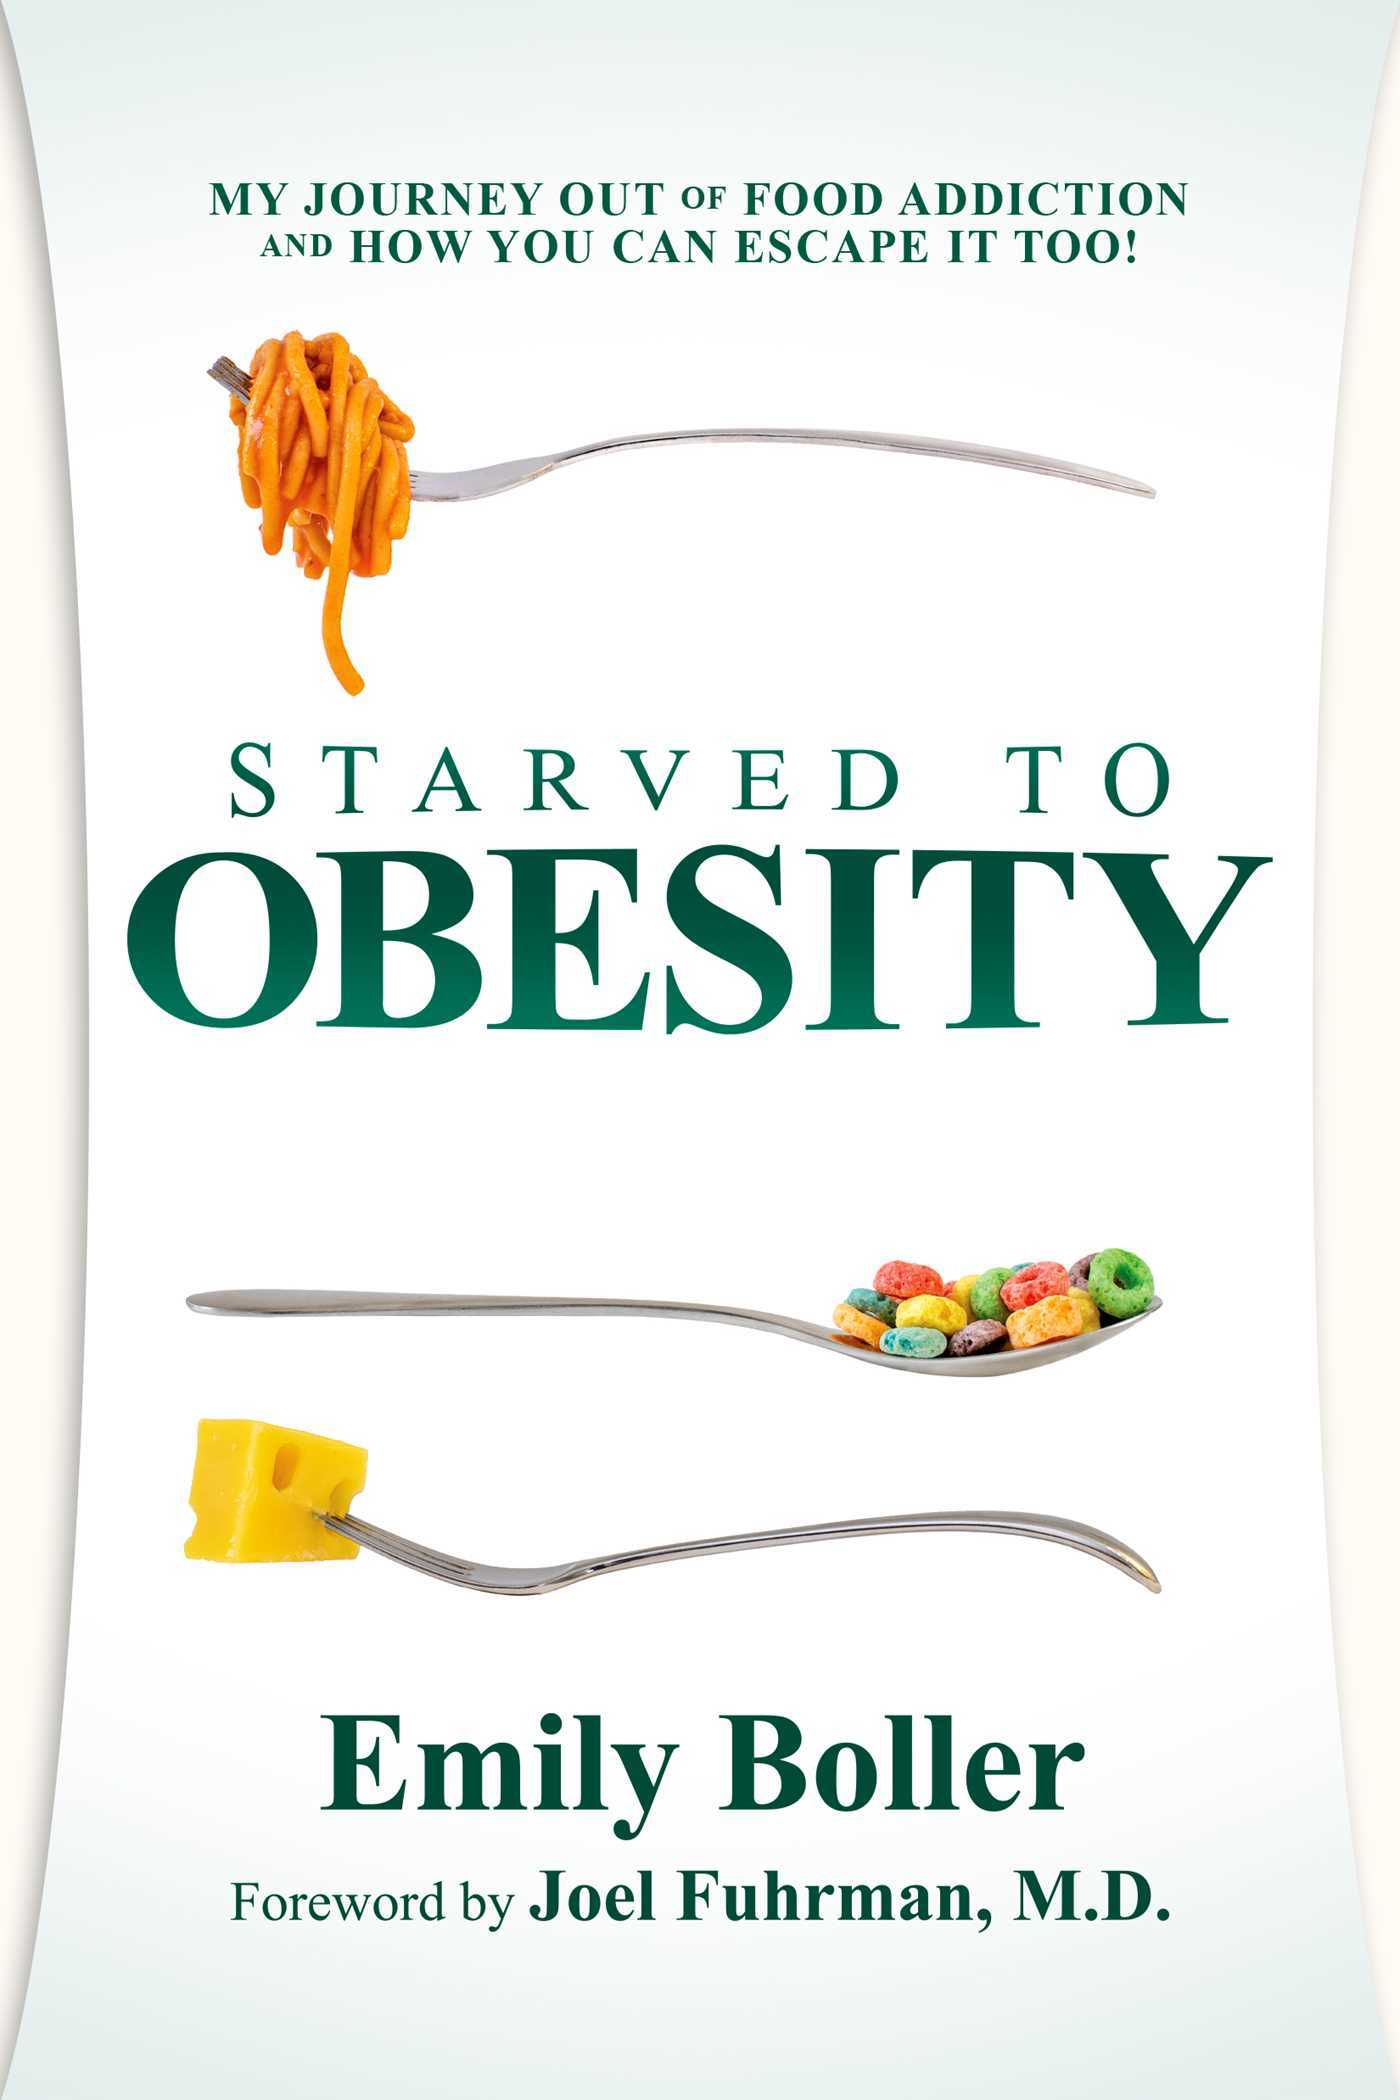 Starved to Obesity  My Journey Out of Food Addiction and How You Can Escape It Too! (2019, Post Hill Press)